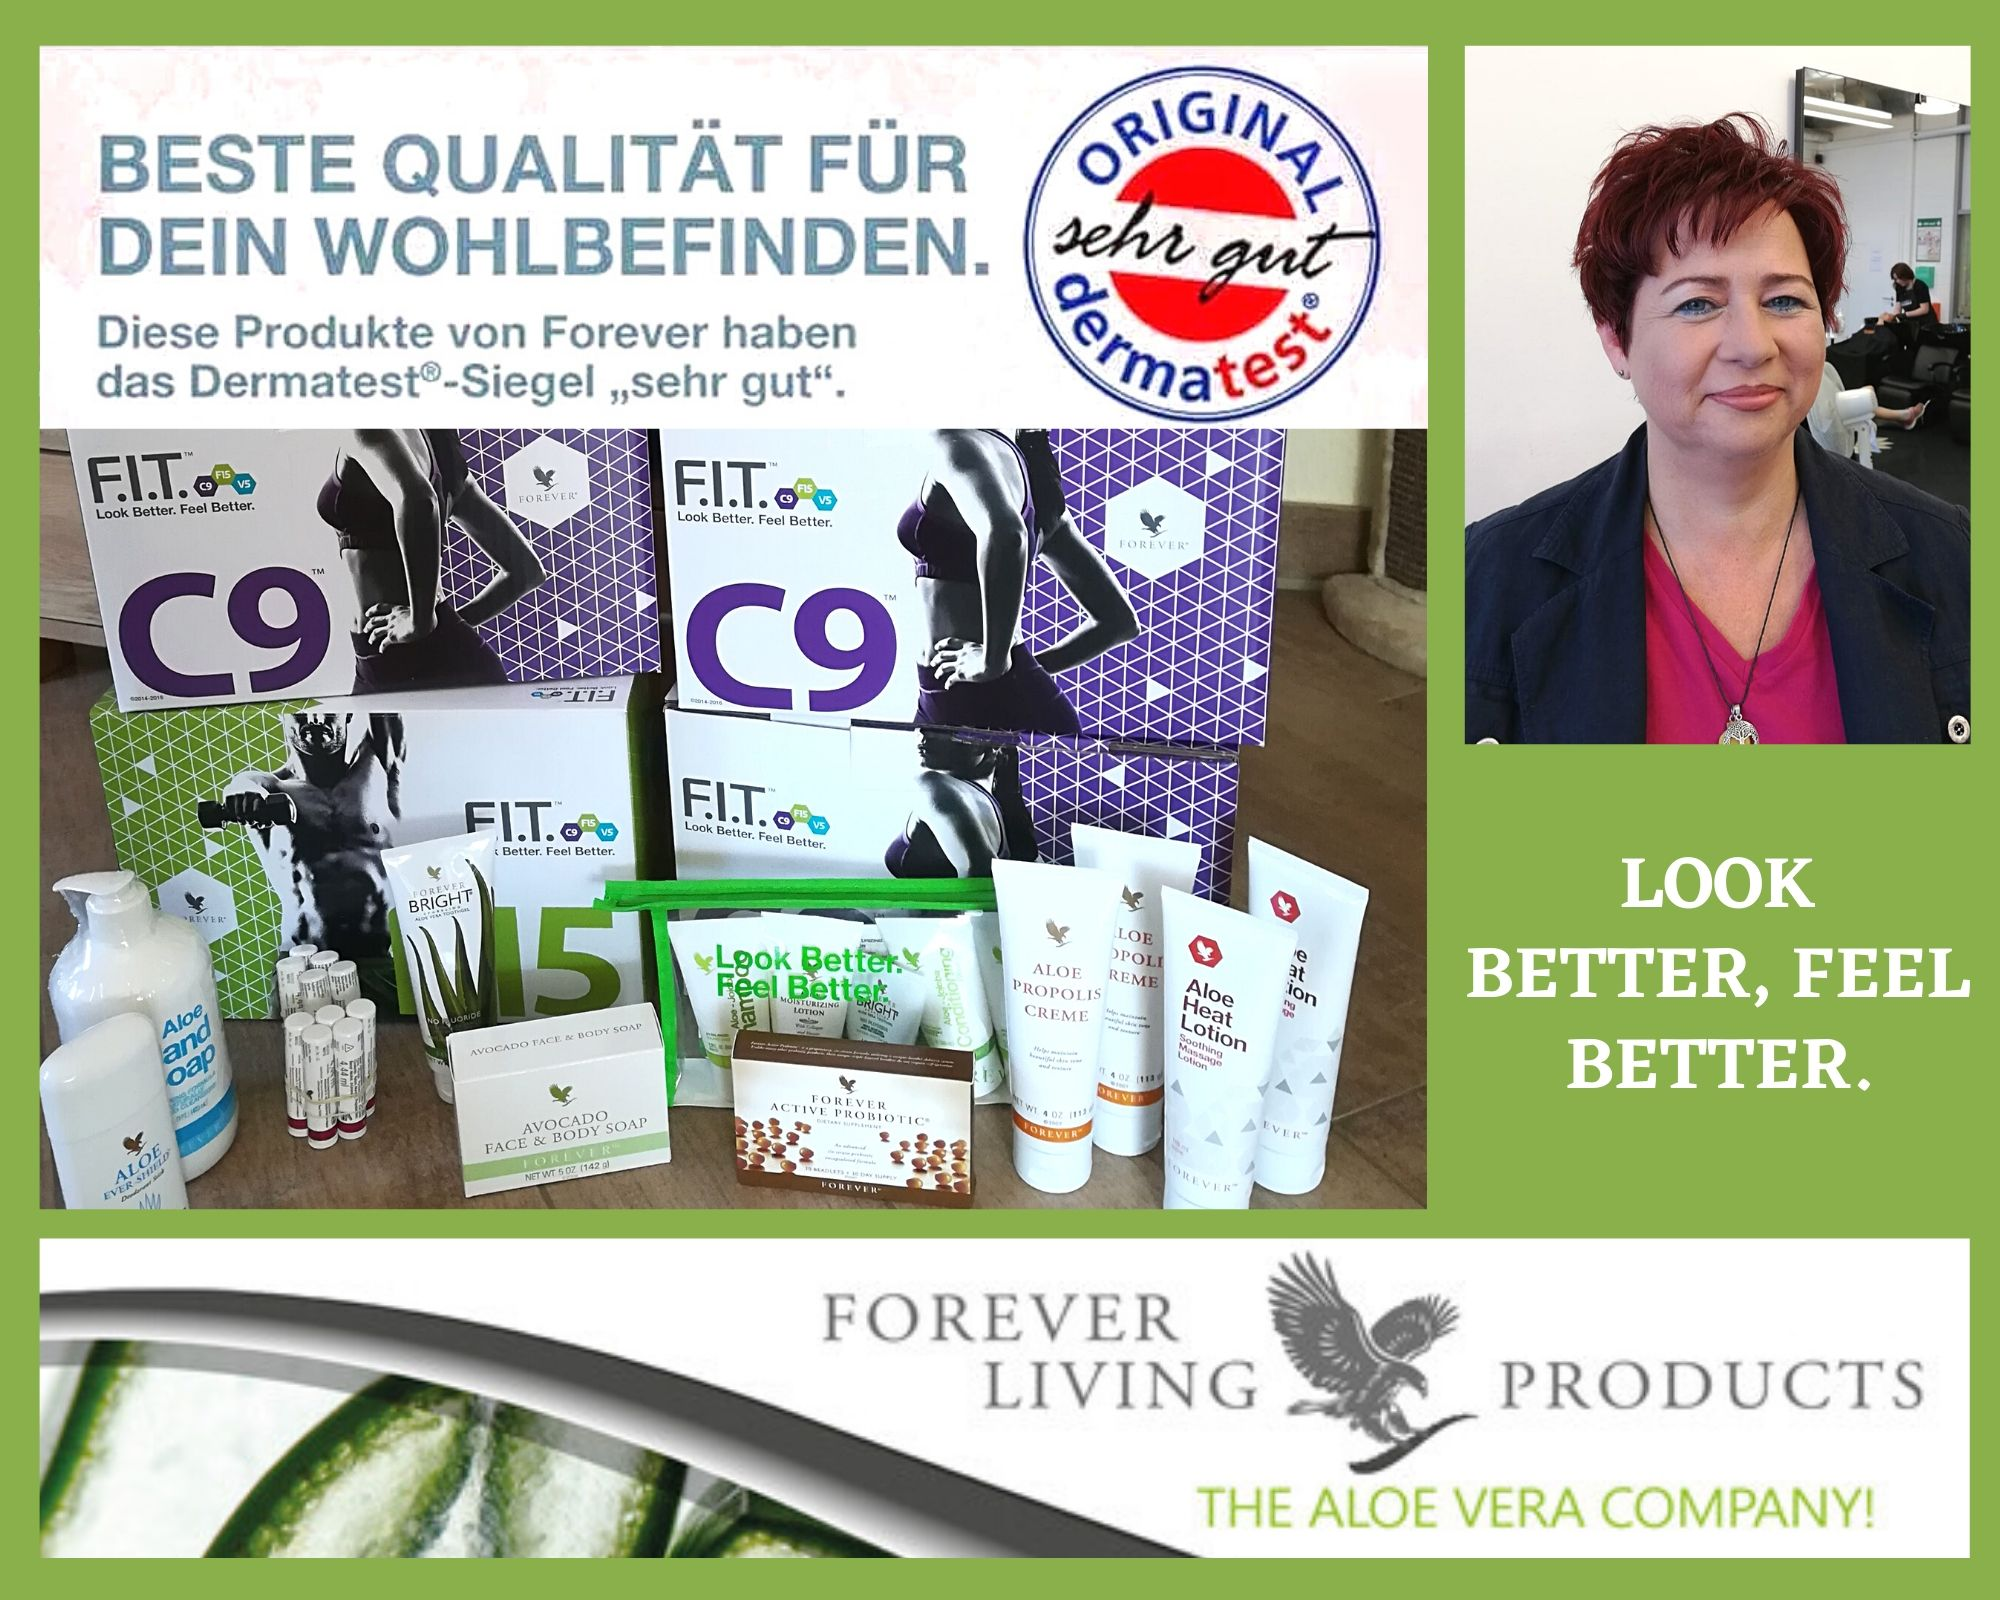 Forever Living Products - The Aloe Vera Company - Vertriebspartner &-Berater Svenja Lucia Braune